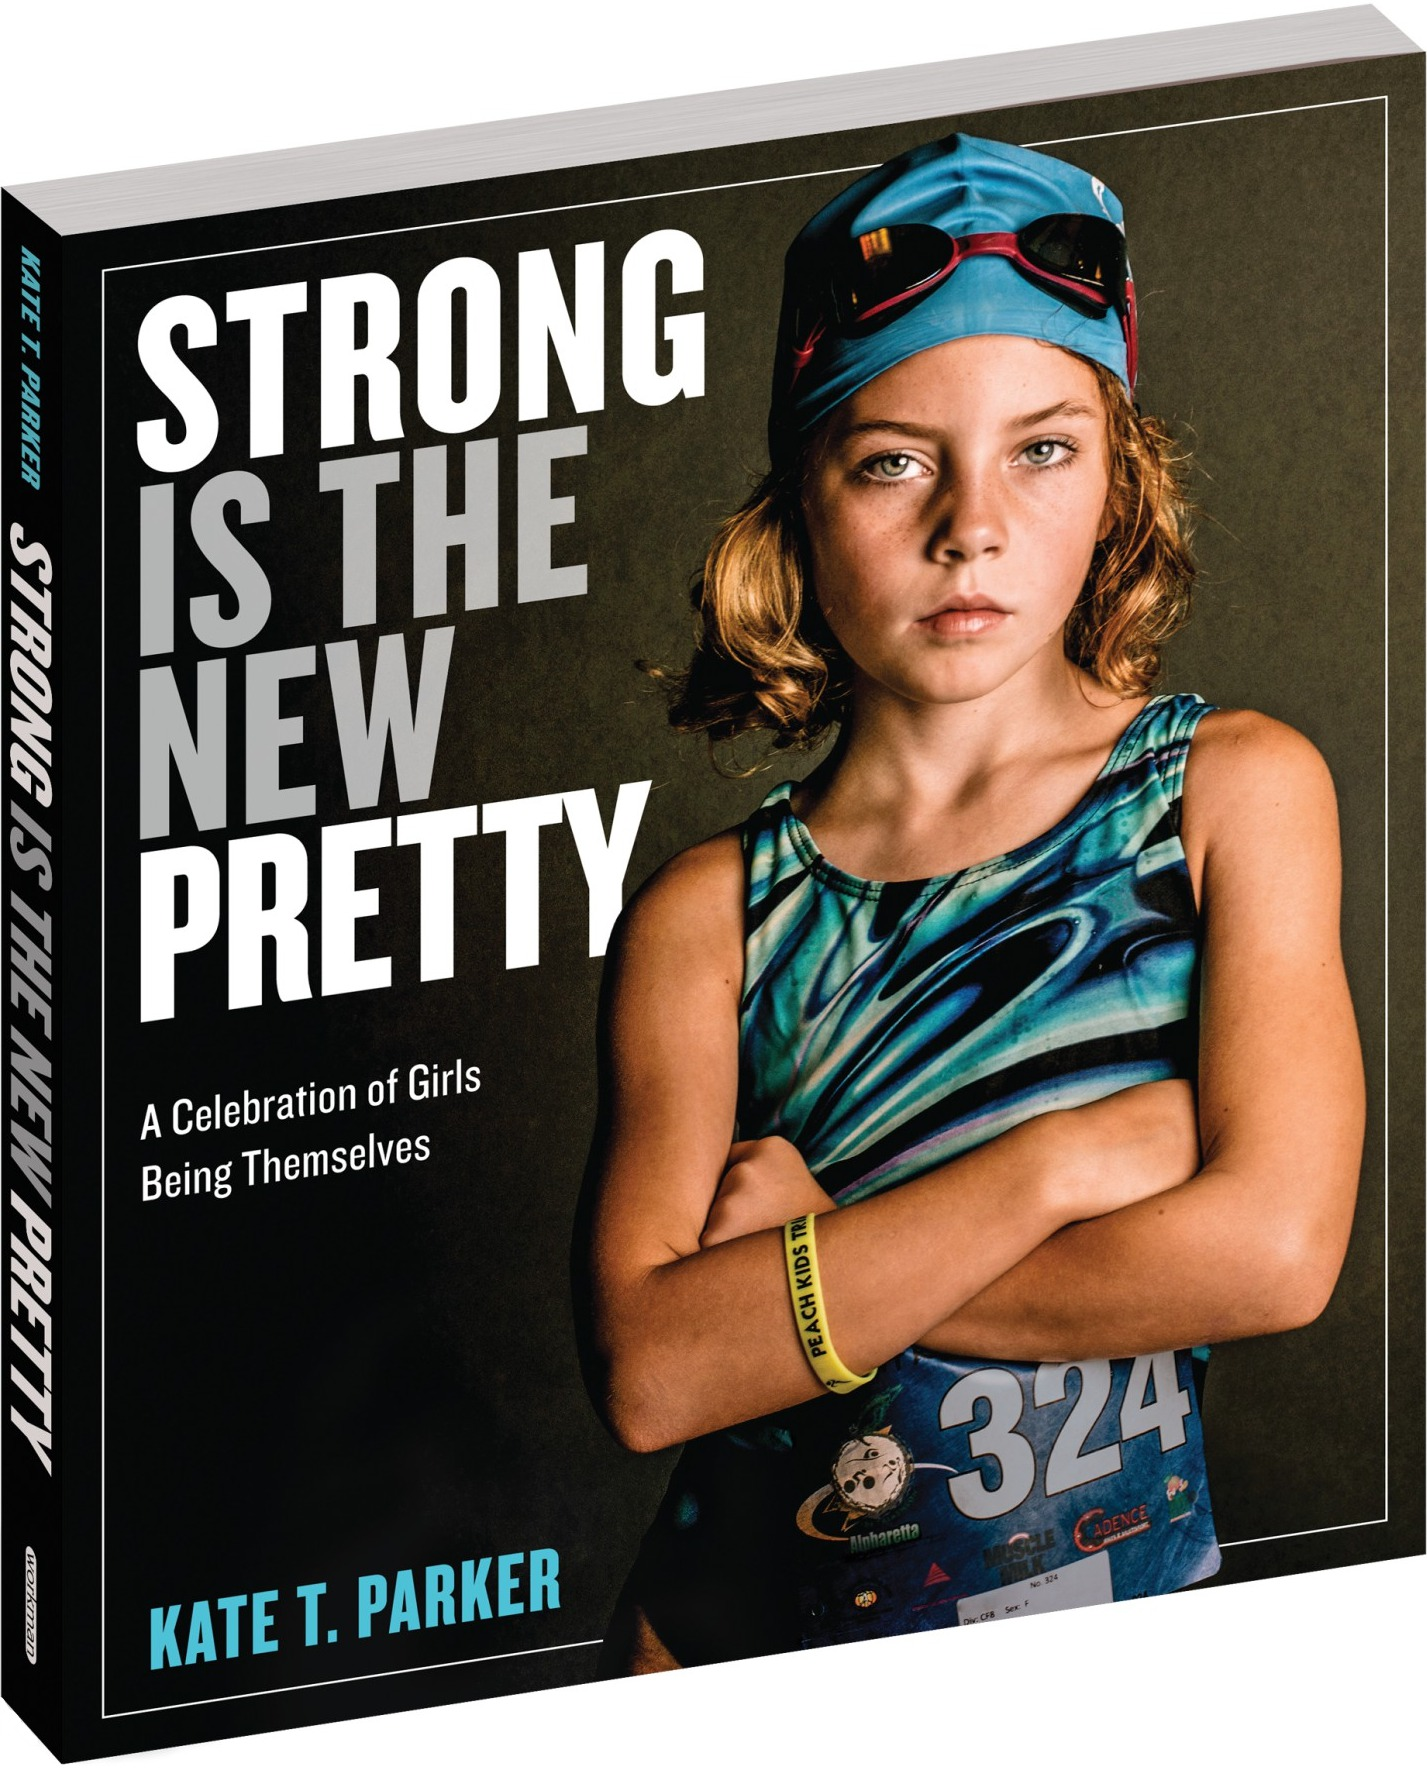 STRONG IS THE NEW PRETTY - BOOK